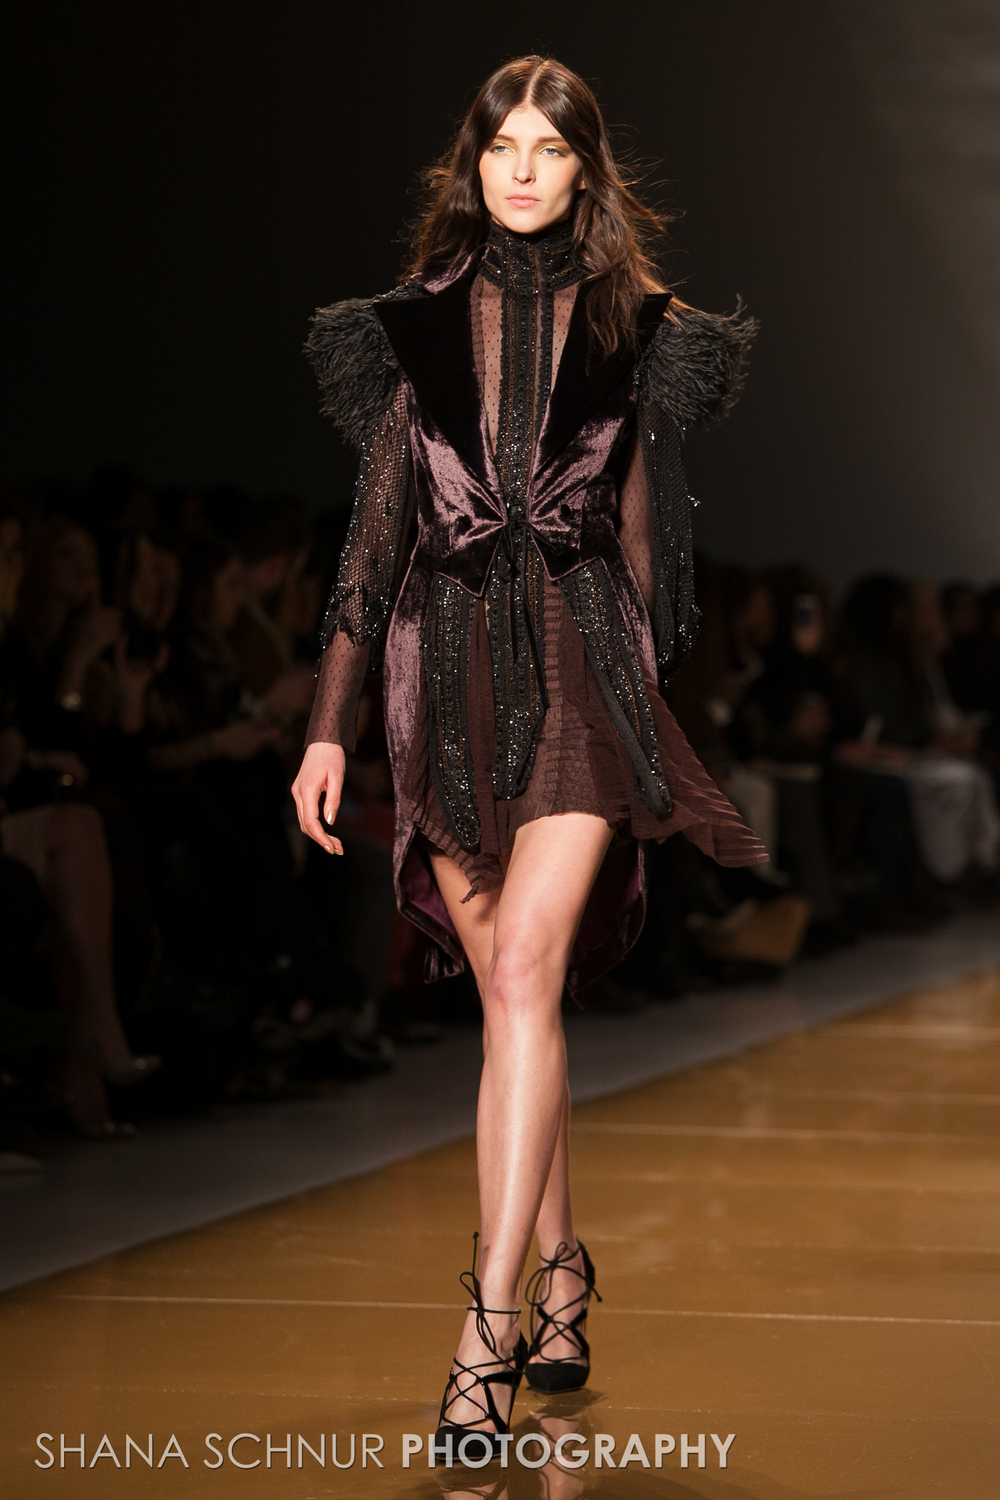 Reem-Acra-New-York-Fashion-Week-Fall-Winter-2015-Shana-Schnur-Photography-IMG_9772-058.jpg